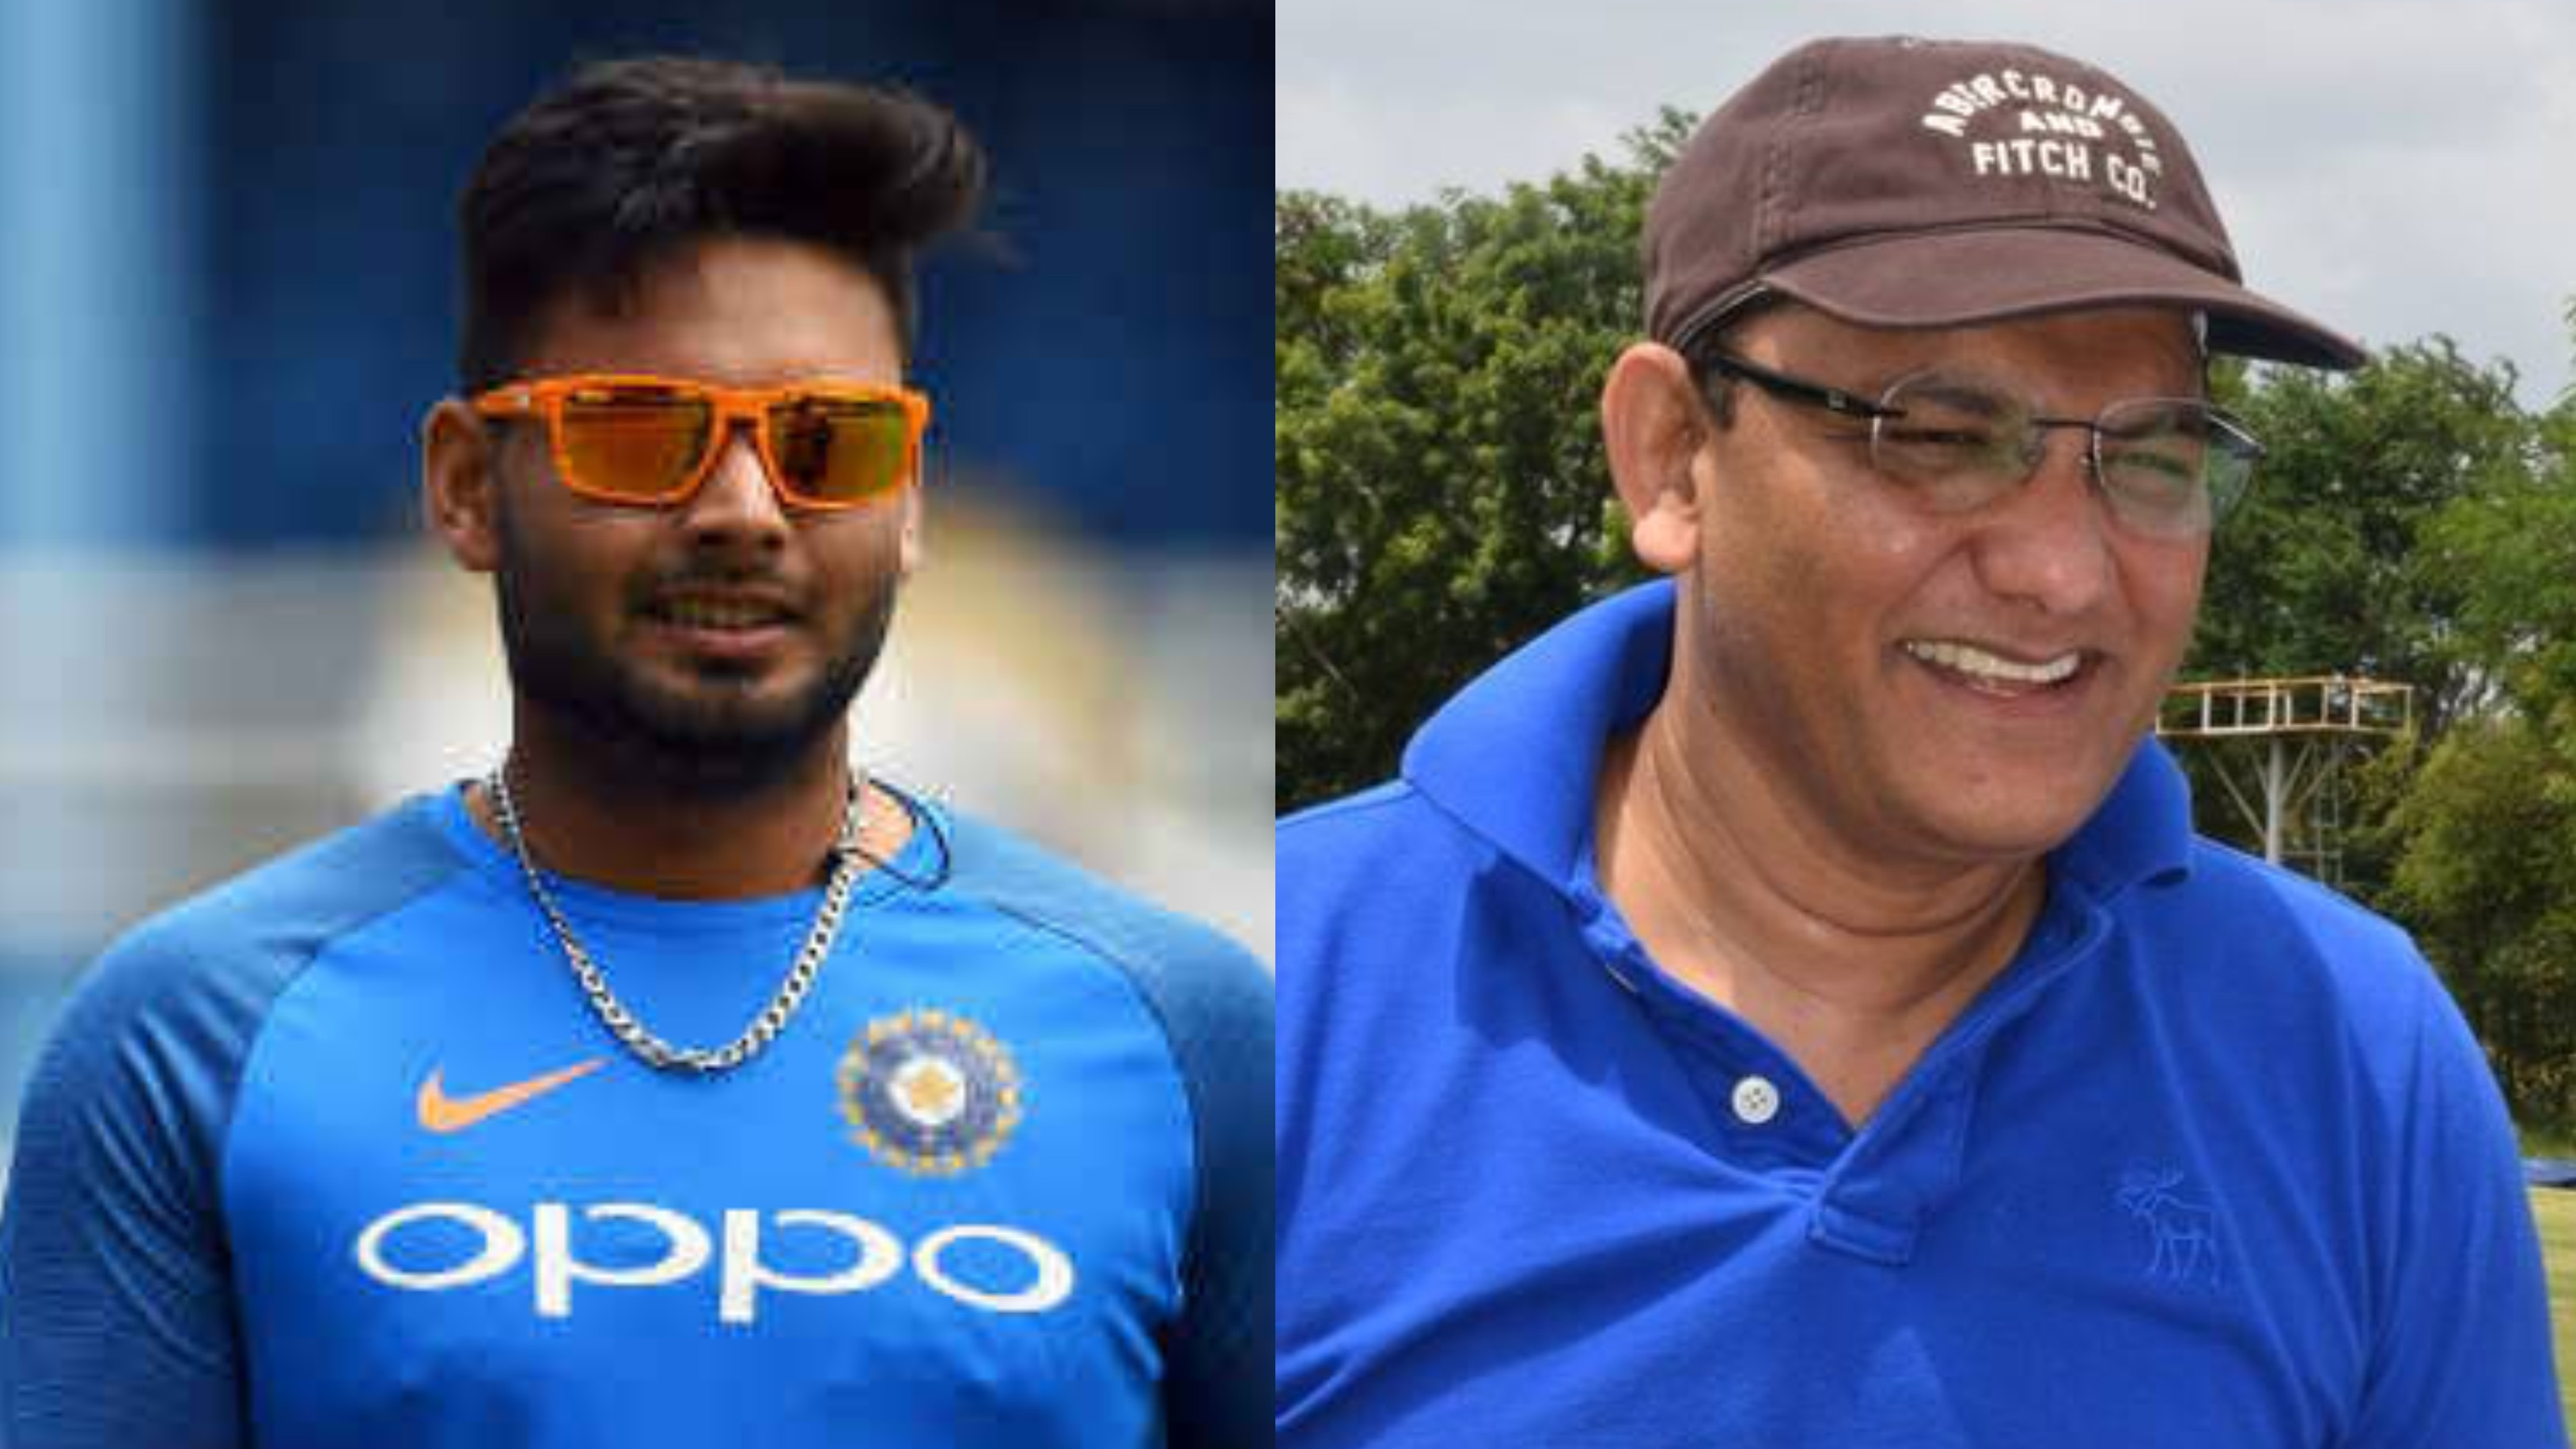 IND v WI 2018: Azharuddin feels Rishabh Pant should be allowed to keep wickets